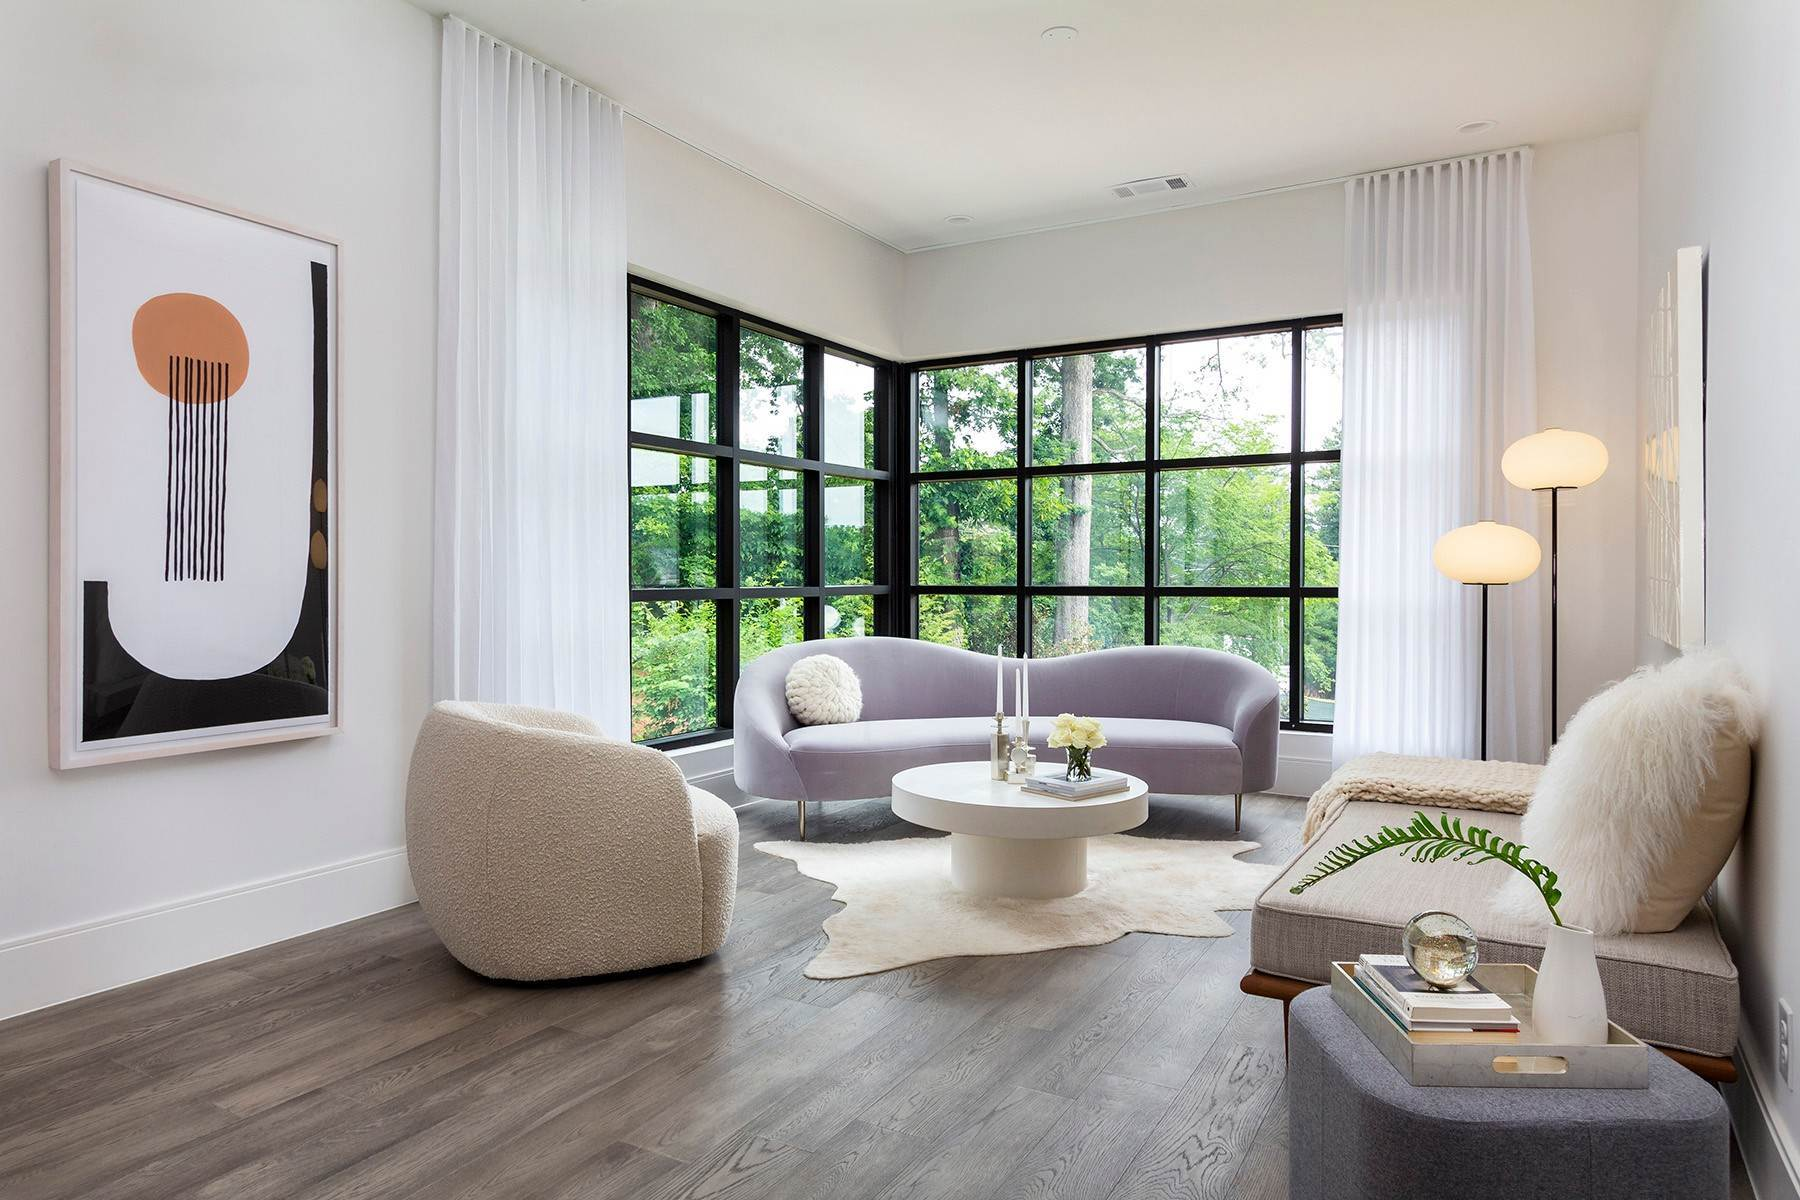 Condominiums for Sale at Stunning, Spacious Flat in Druid Hills 1517 Briarcliff Road, No. 1504 C Atlanta, Georgia 30306 United States